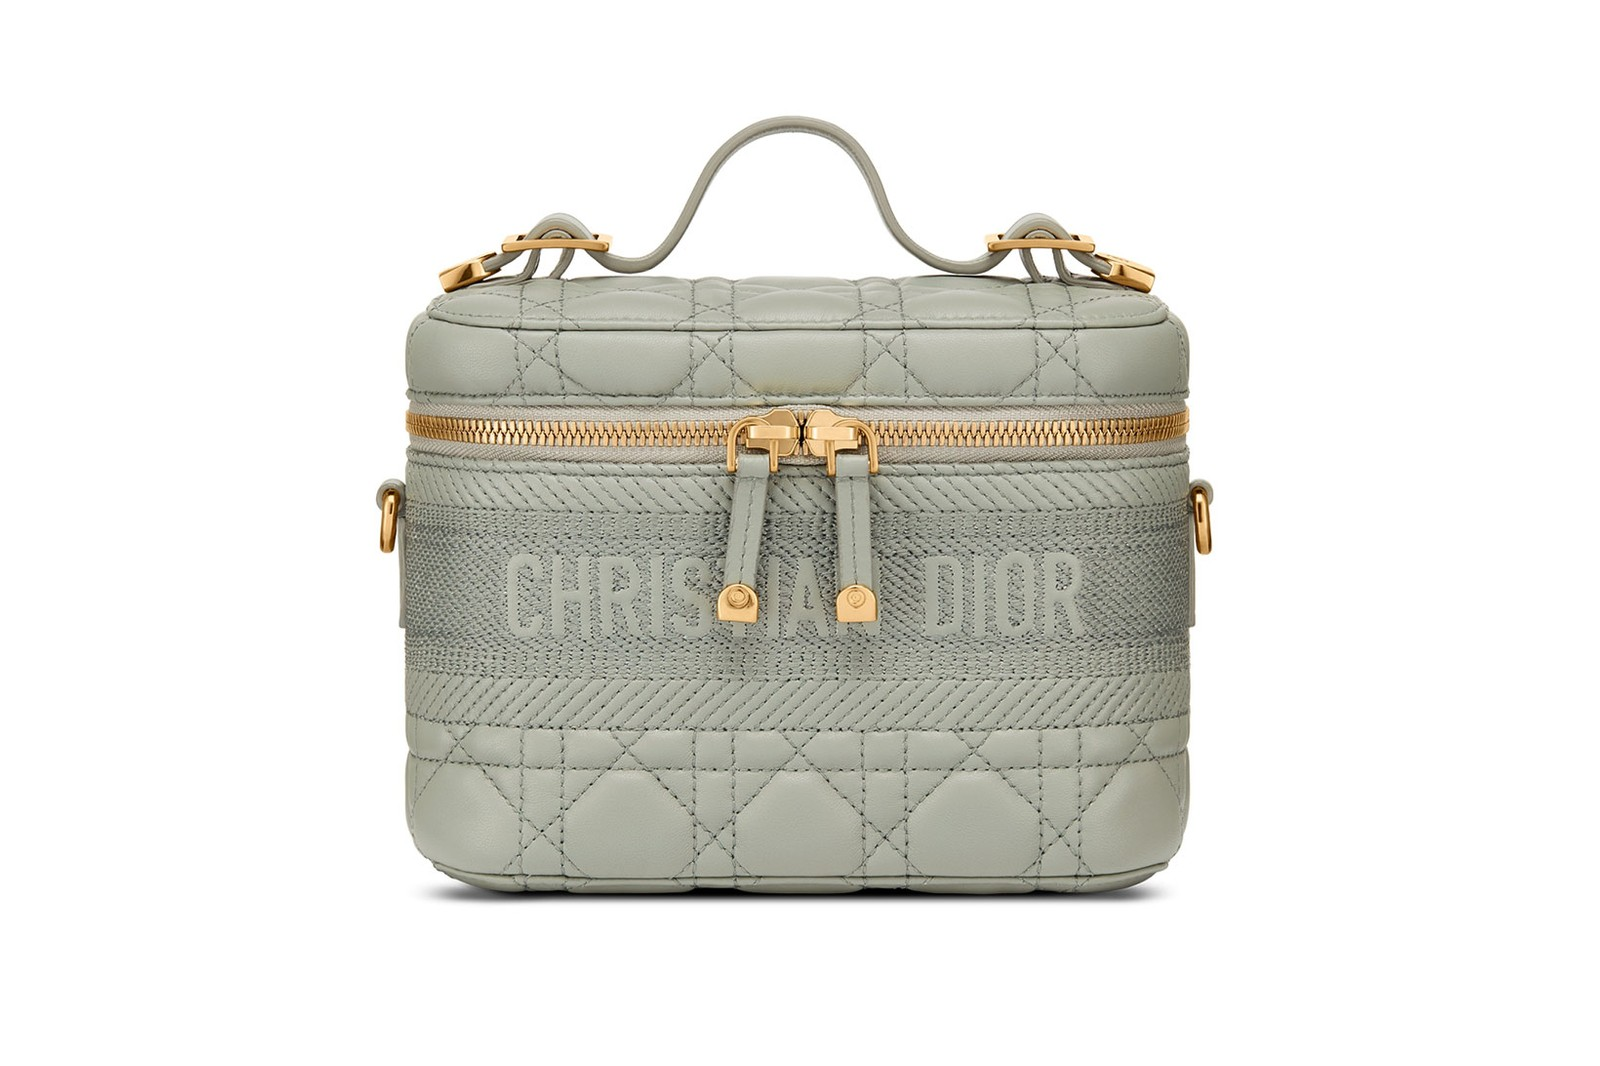 dior makeup vanity cases bags cruise 2021 collection oblique cannage toile de jouy